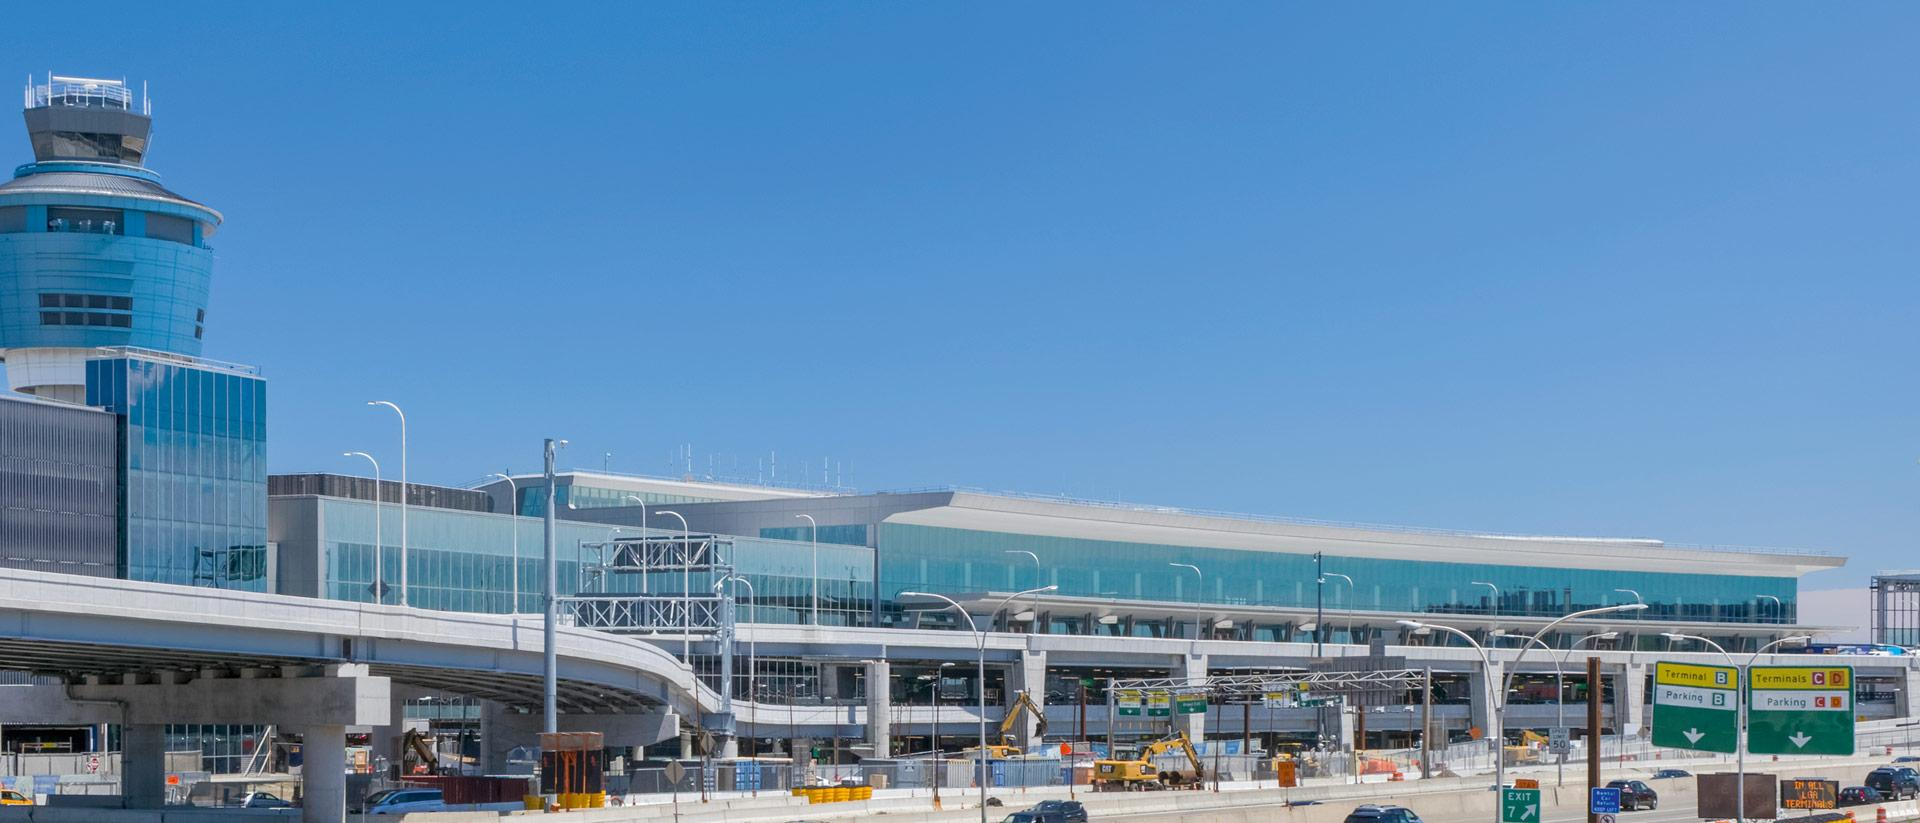 LaGuardia Airport Project Cover